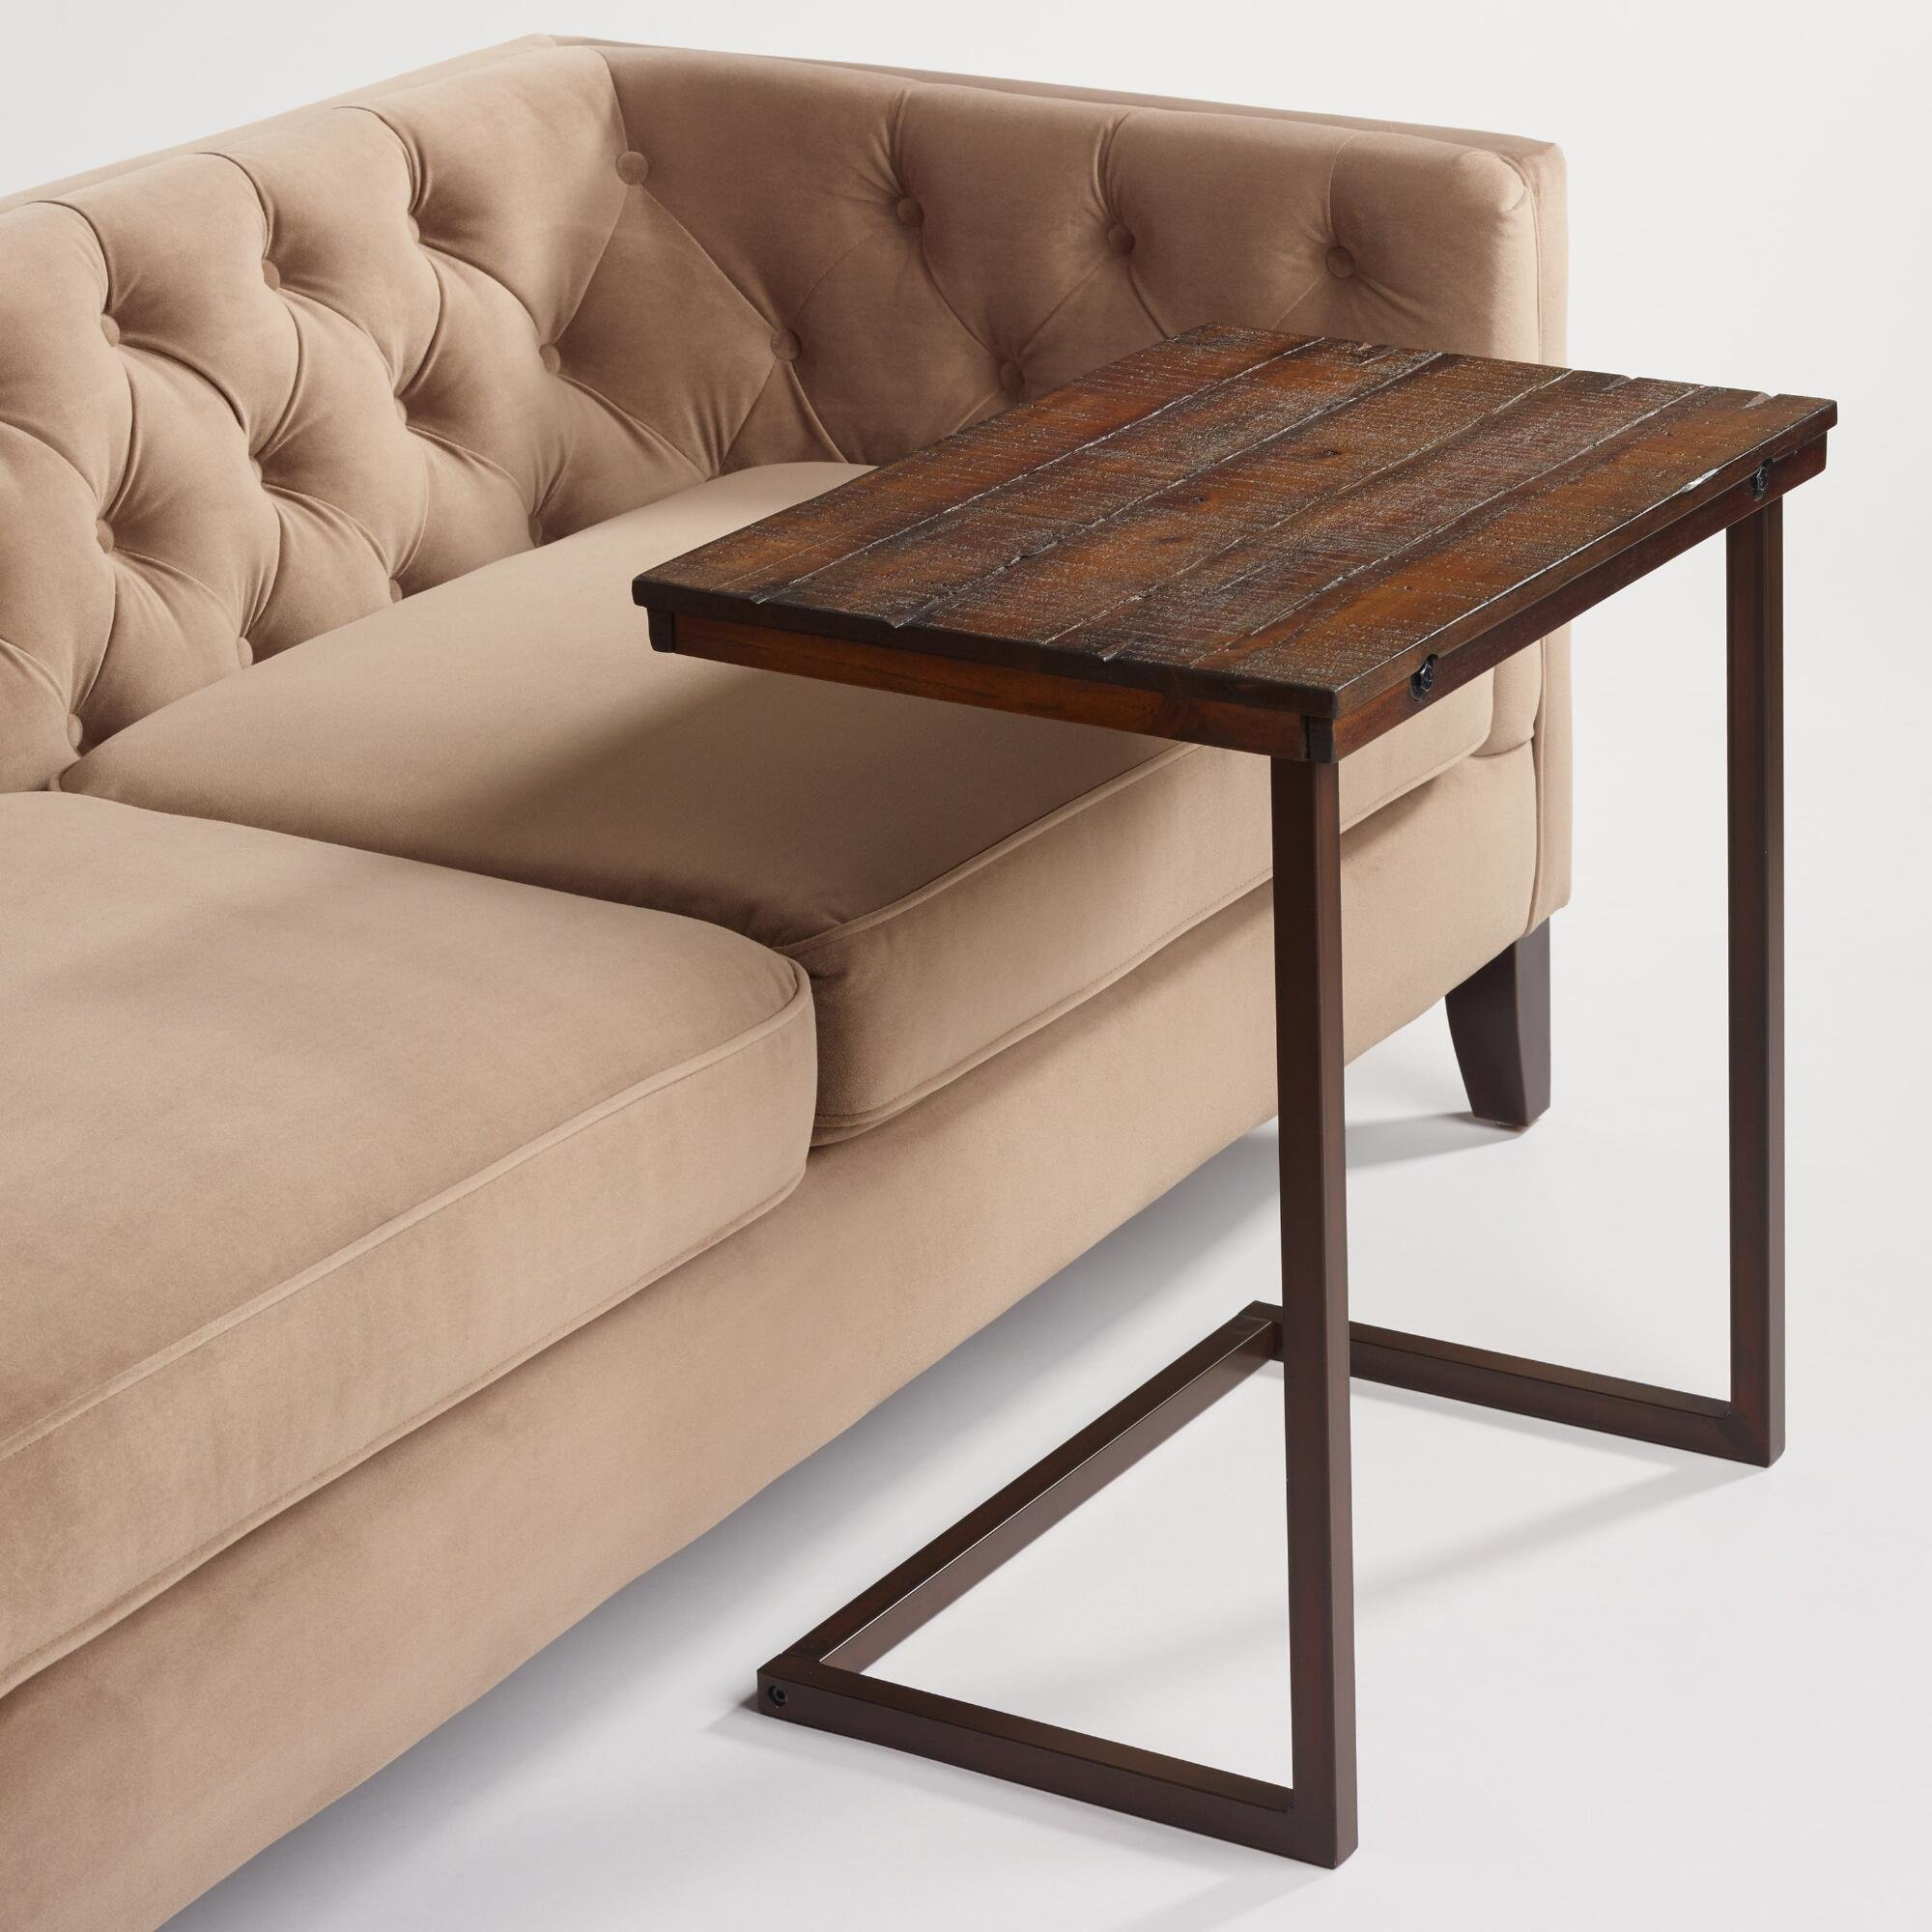 Wood Laptop Table For Couch Recliner And Sofa Slide Under Type That Can